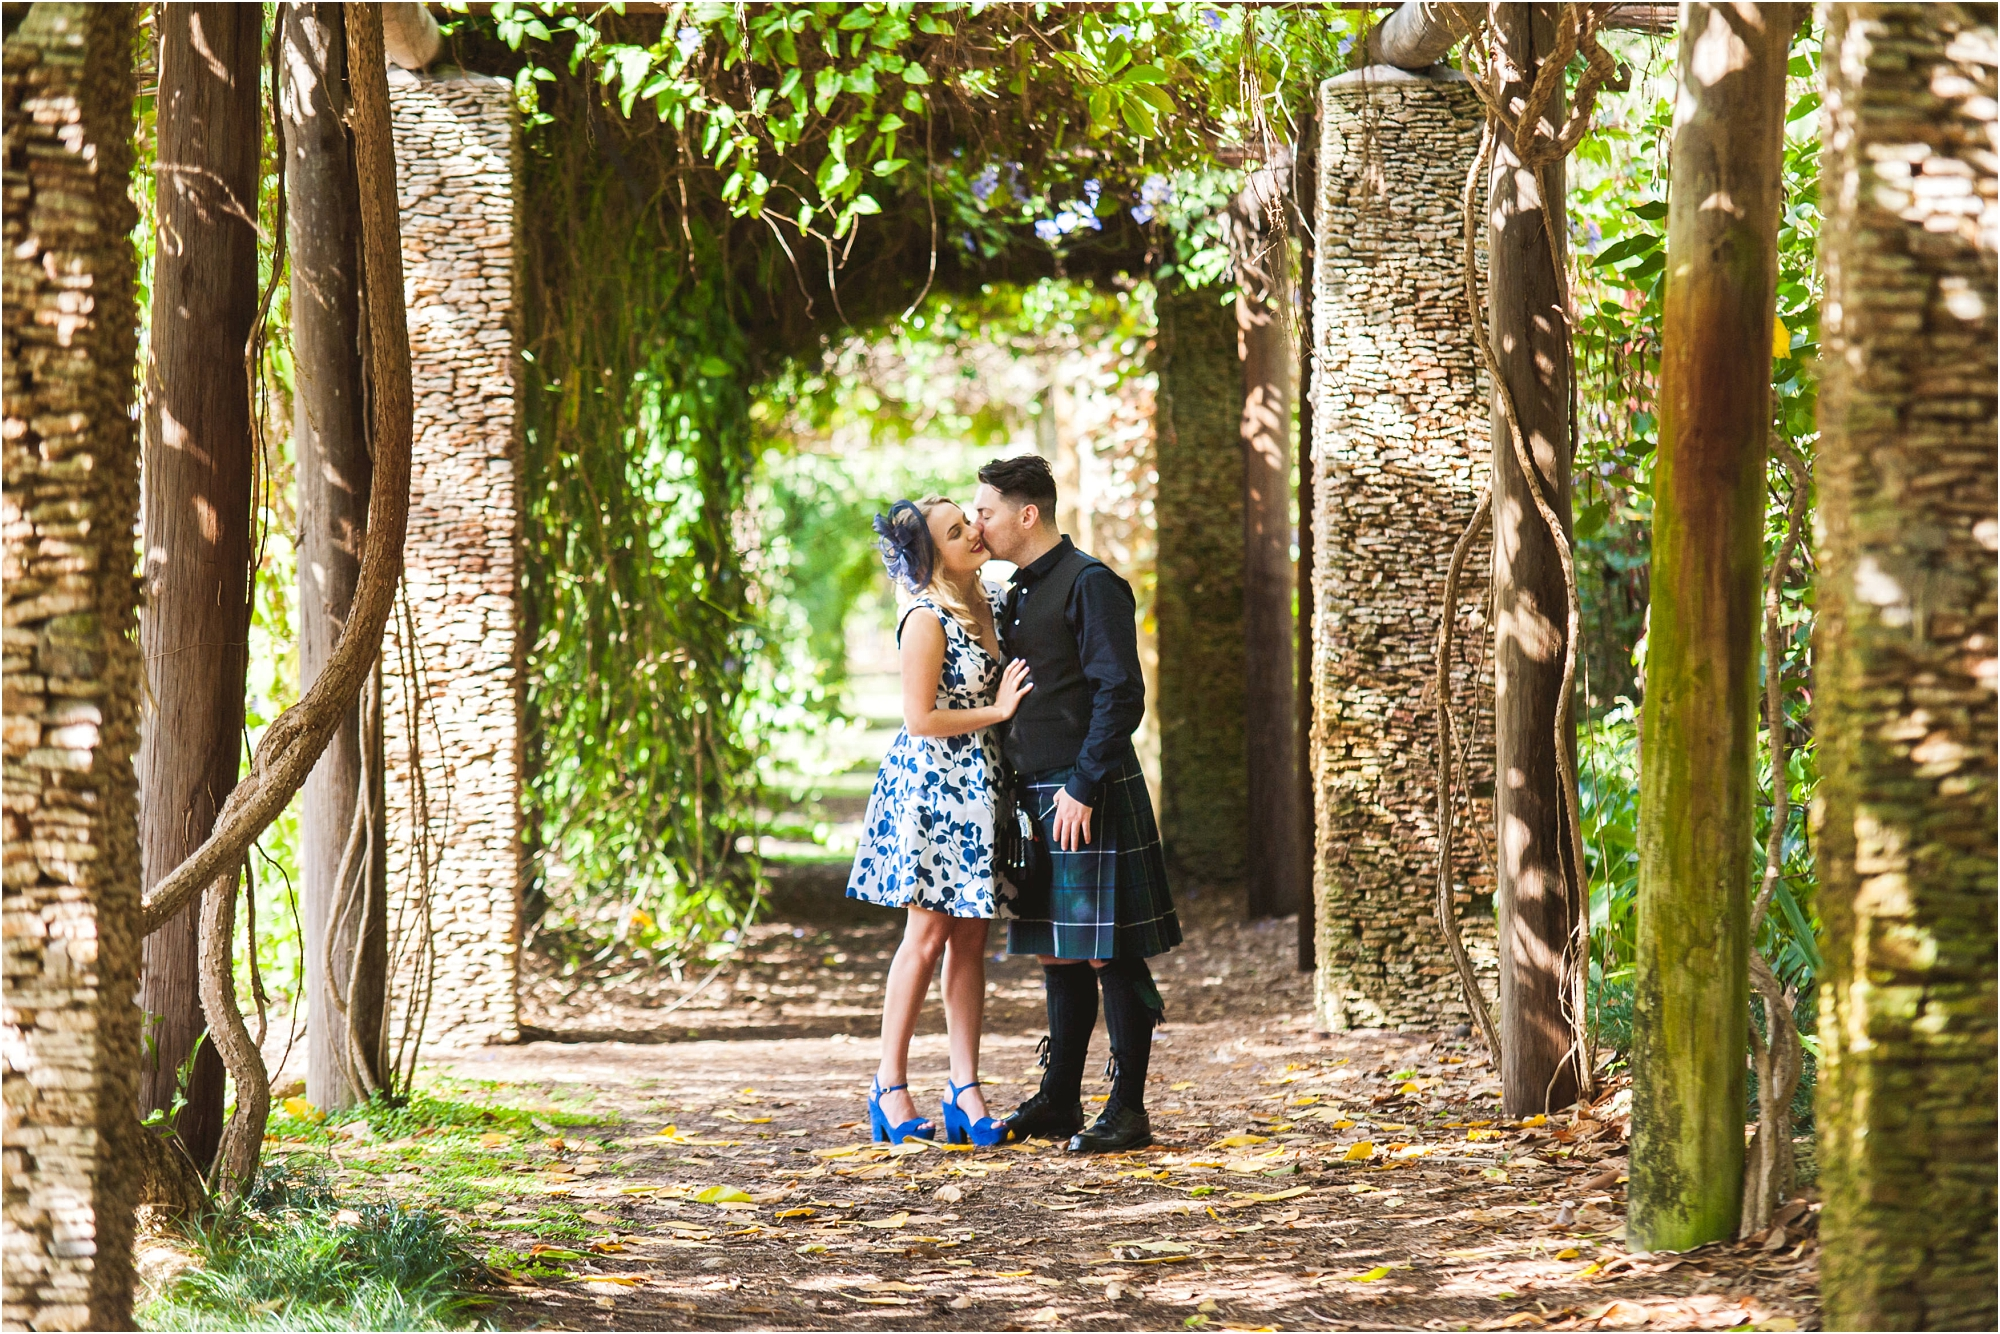 engagement-portraits-fairchild-tropical-botanic-garden-miami-photographer-jessenia-gonzalez_1102.jpg